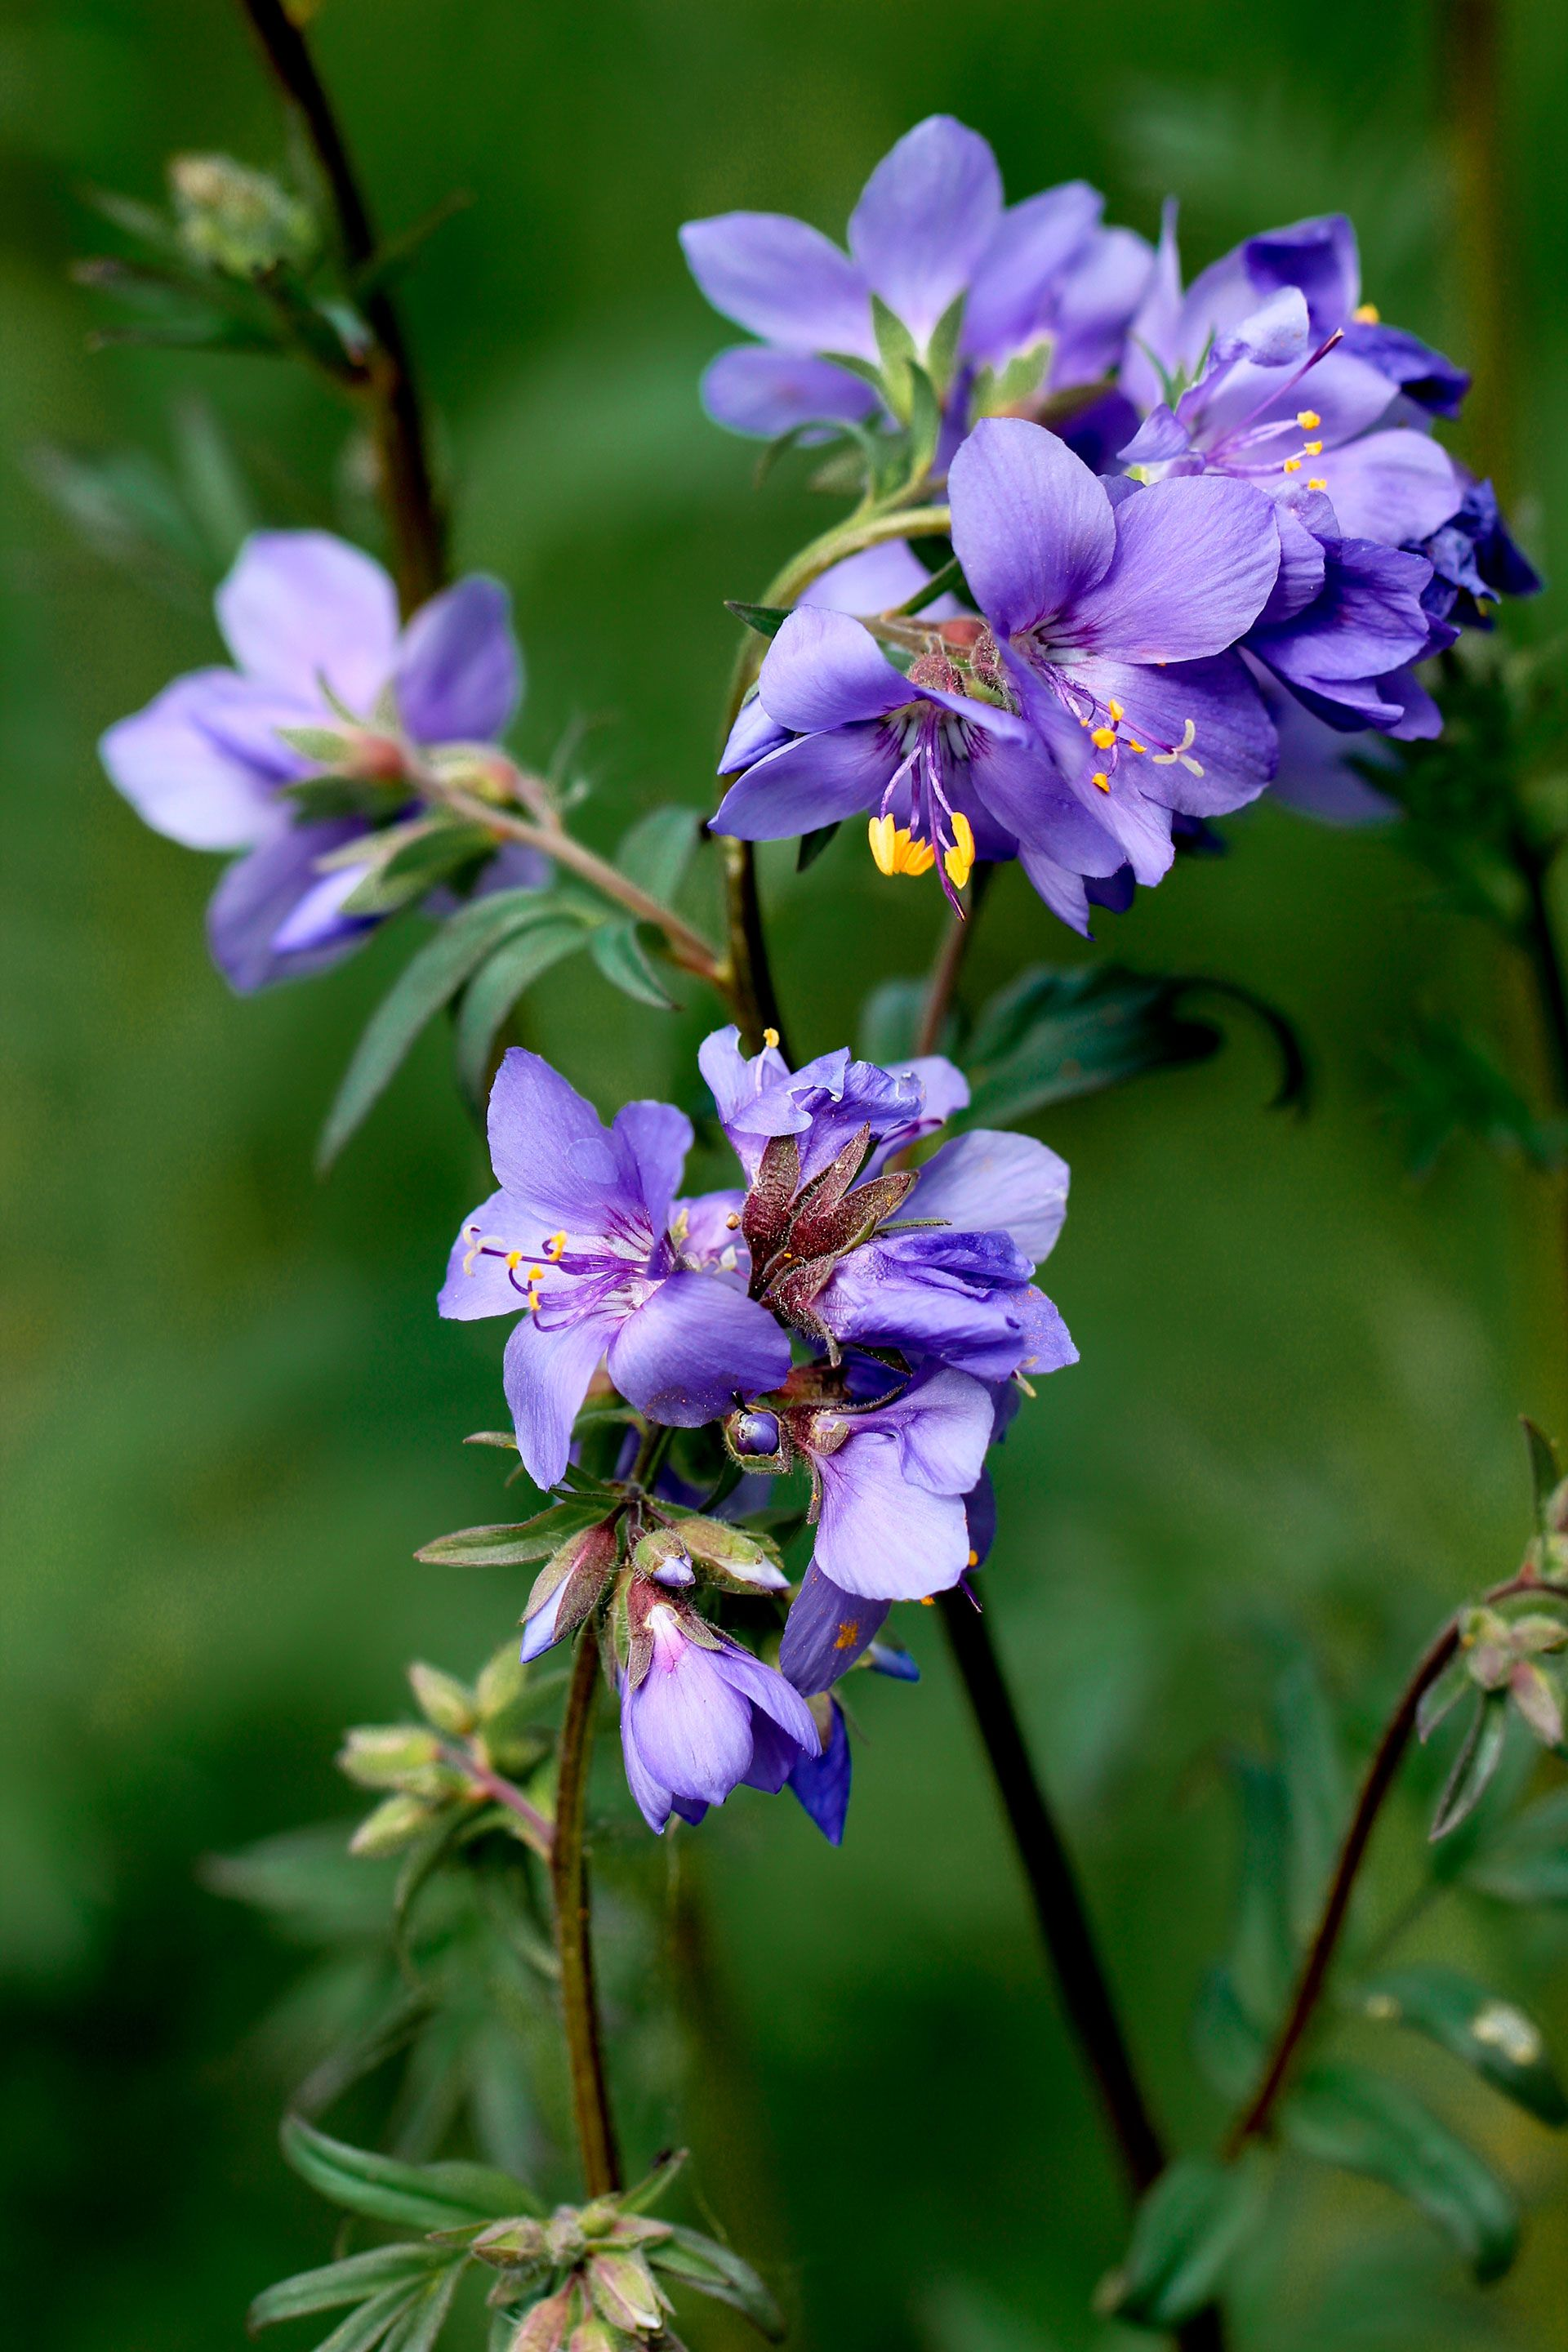 After the second bloom, leave the Jacob's Ladder blossoms intact to reseed later on.